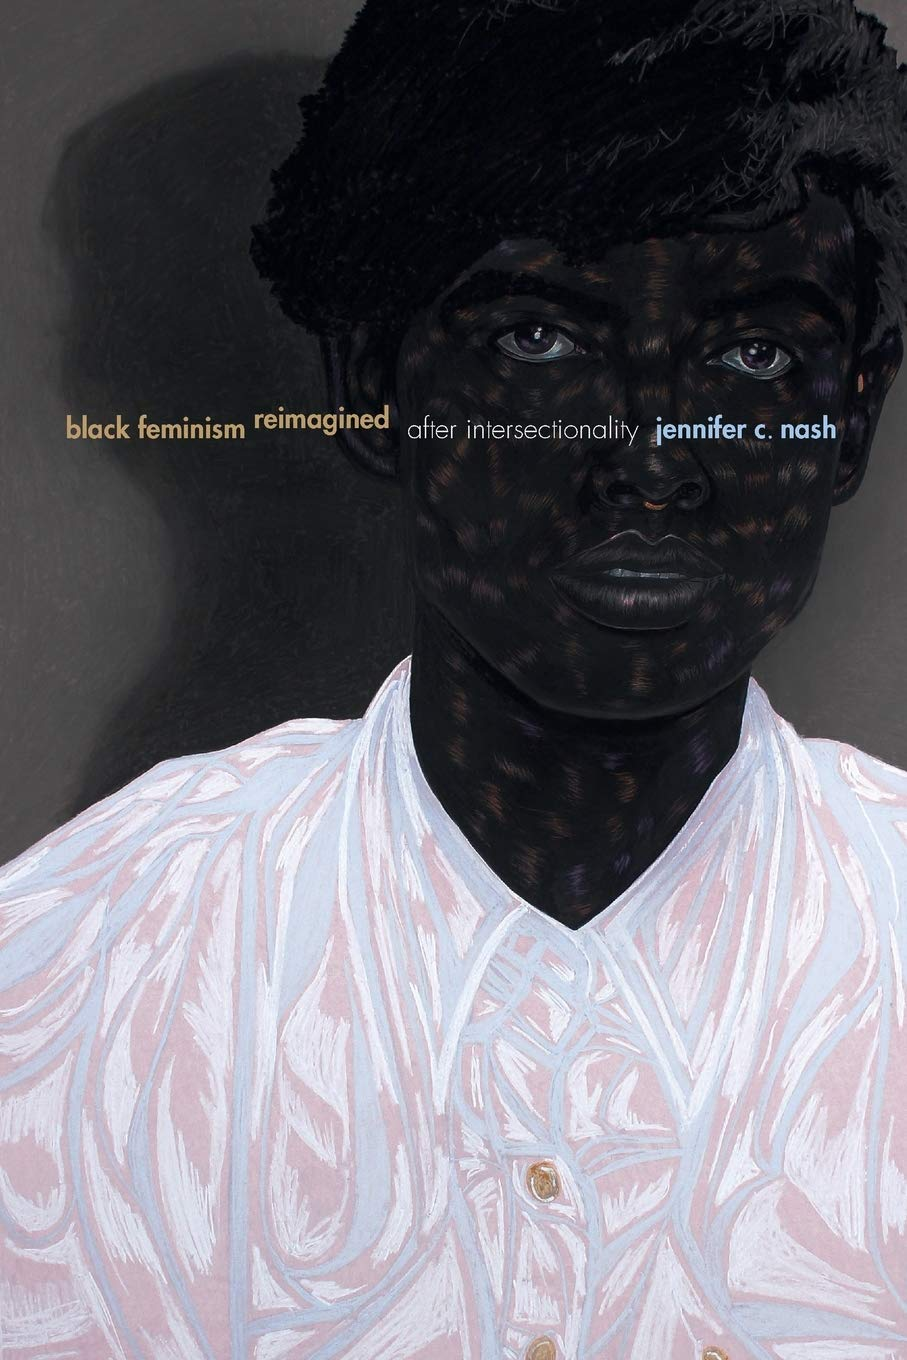 Black Feminism Reimagined: After Intersectionality by Jennifer C. Nash